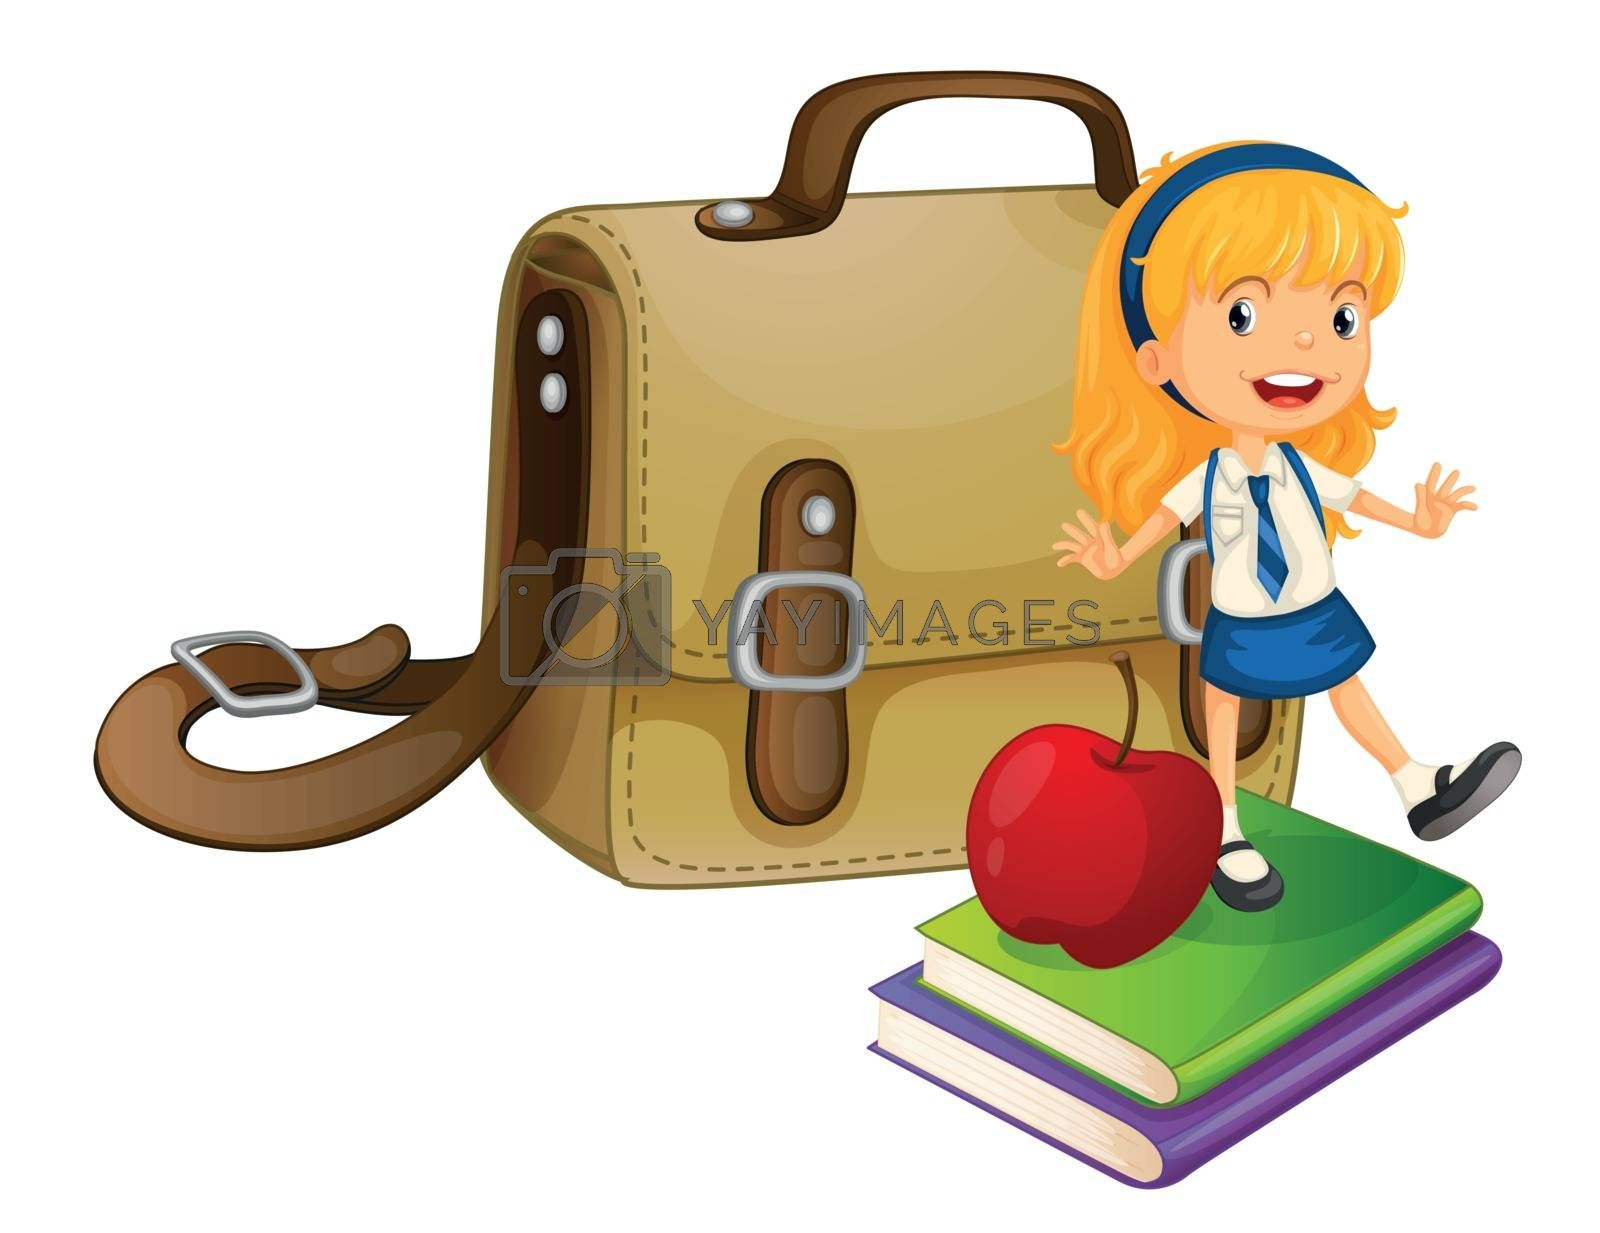 Illustration of a girl and a schoolbag